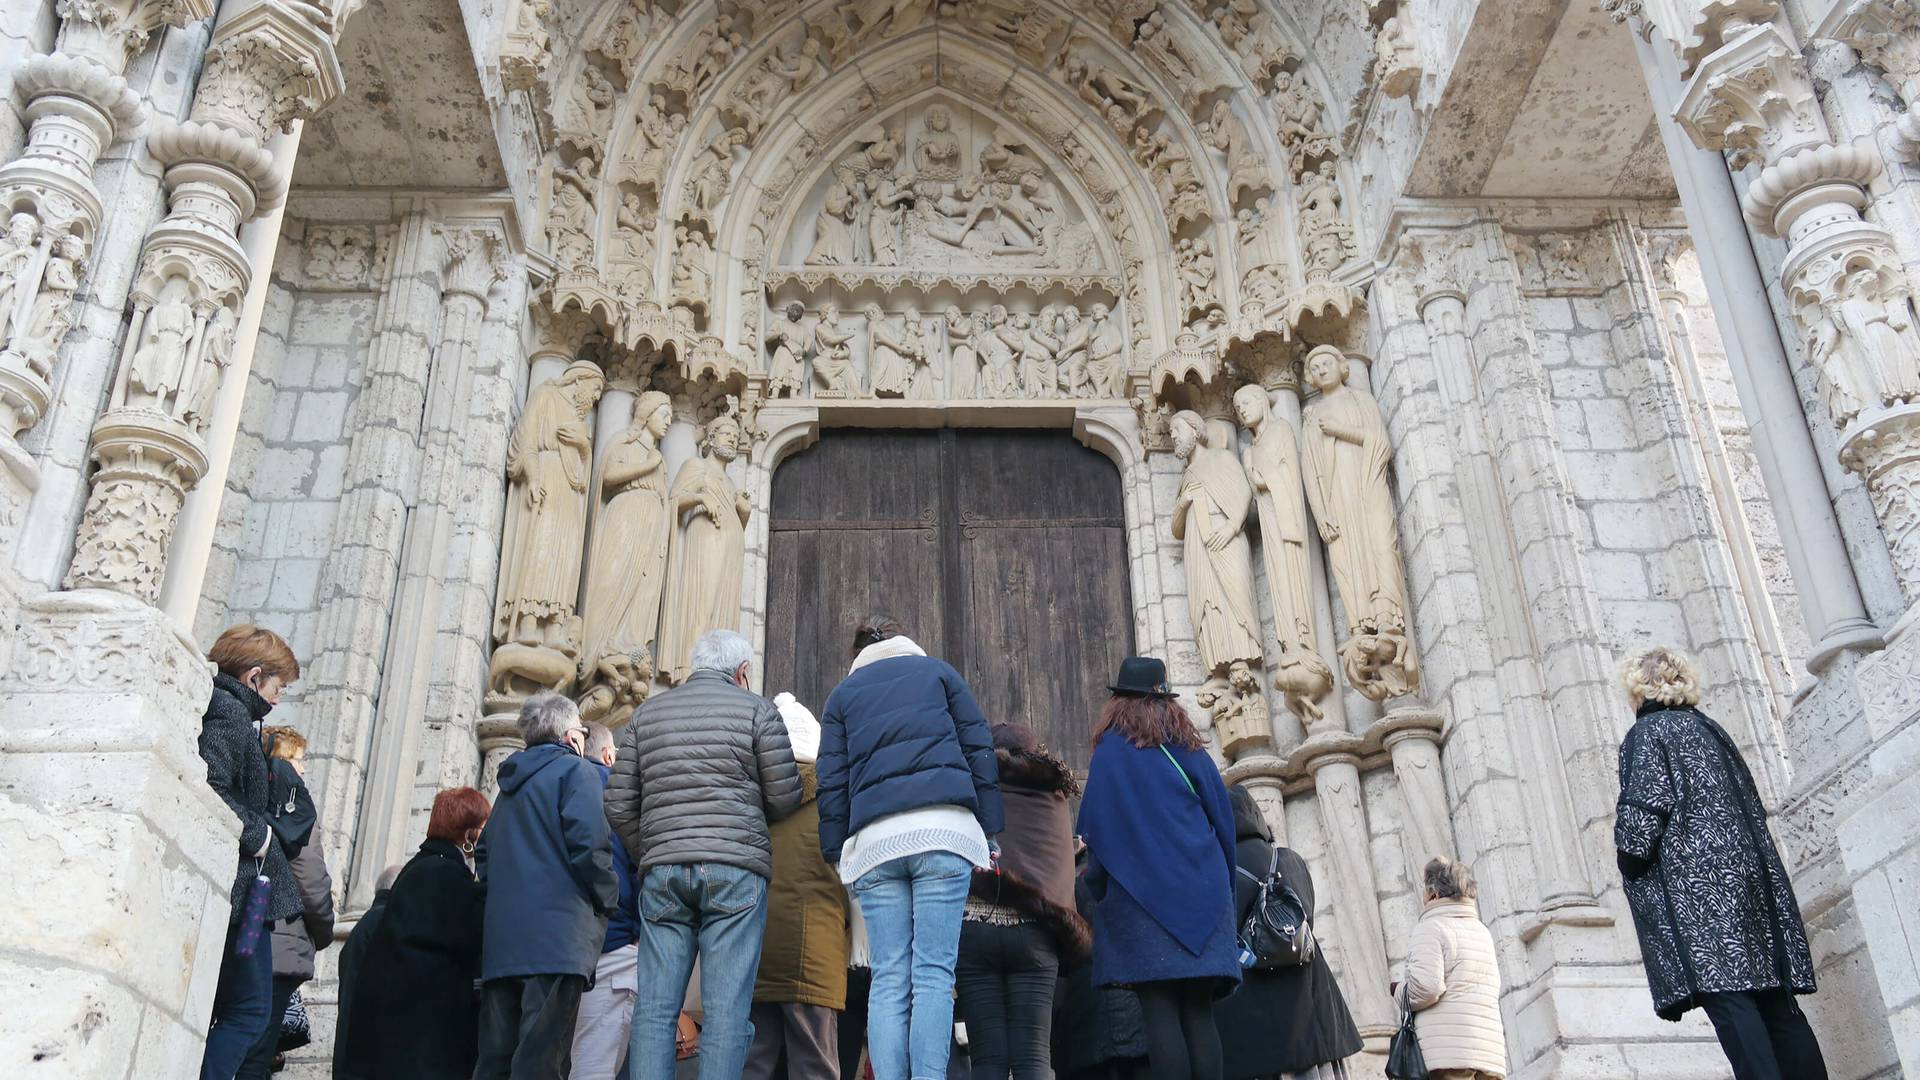 Visit the cathedral as a group